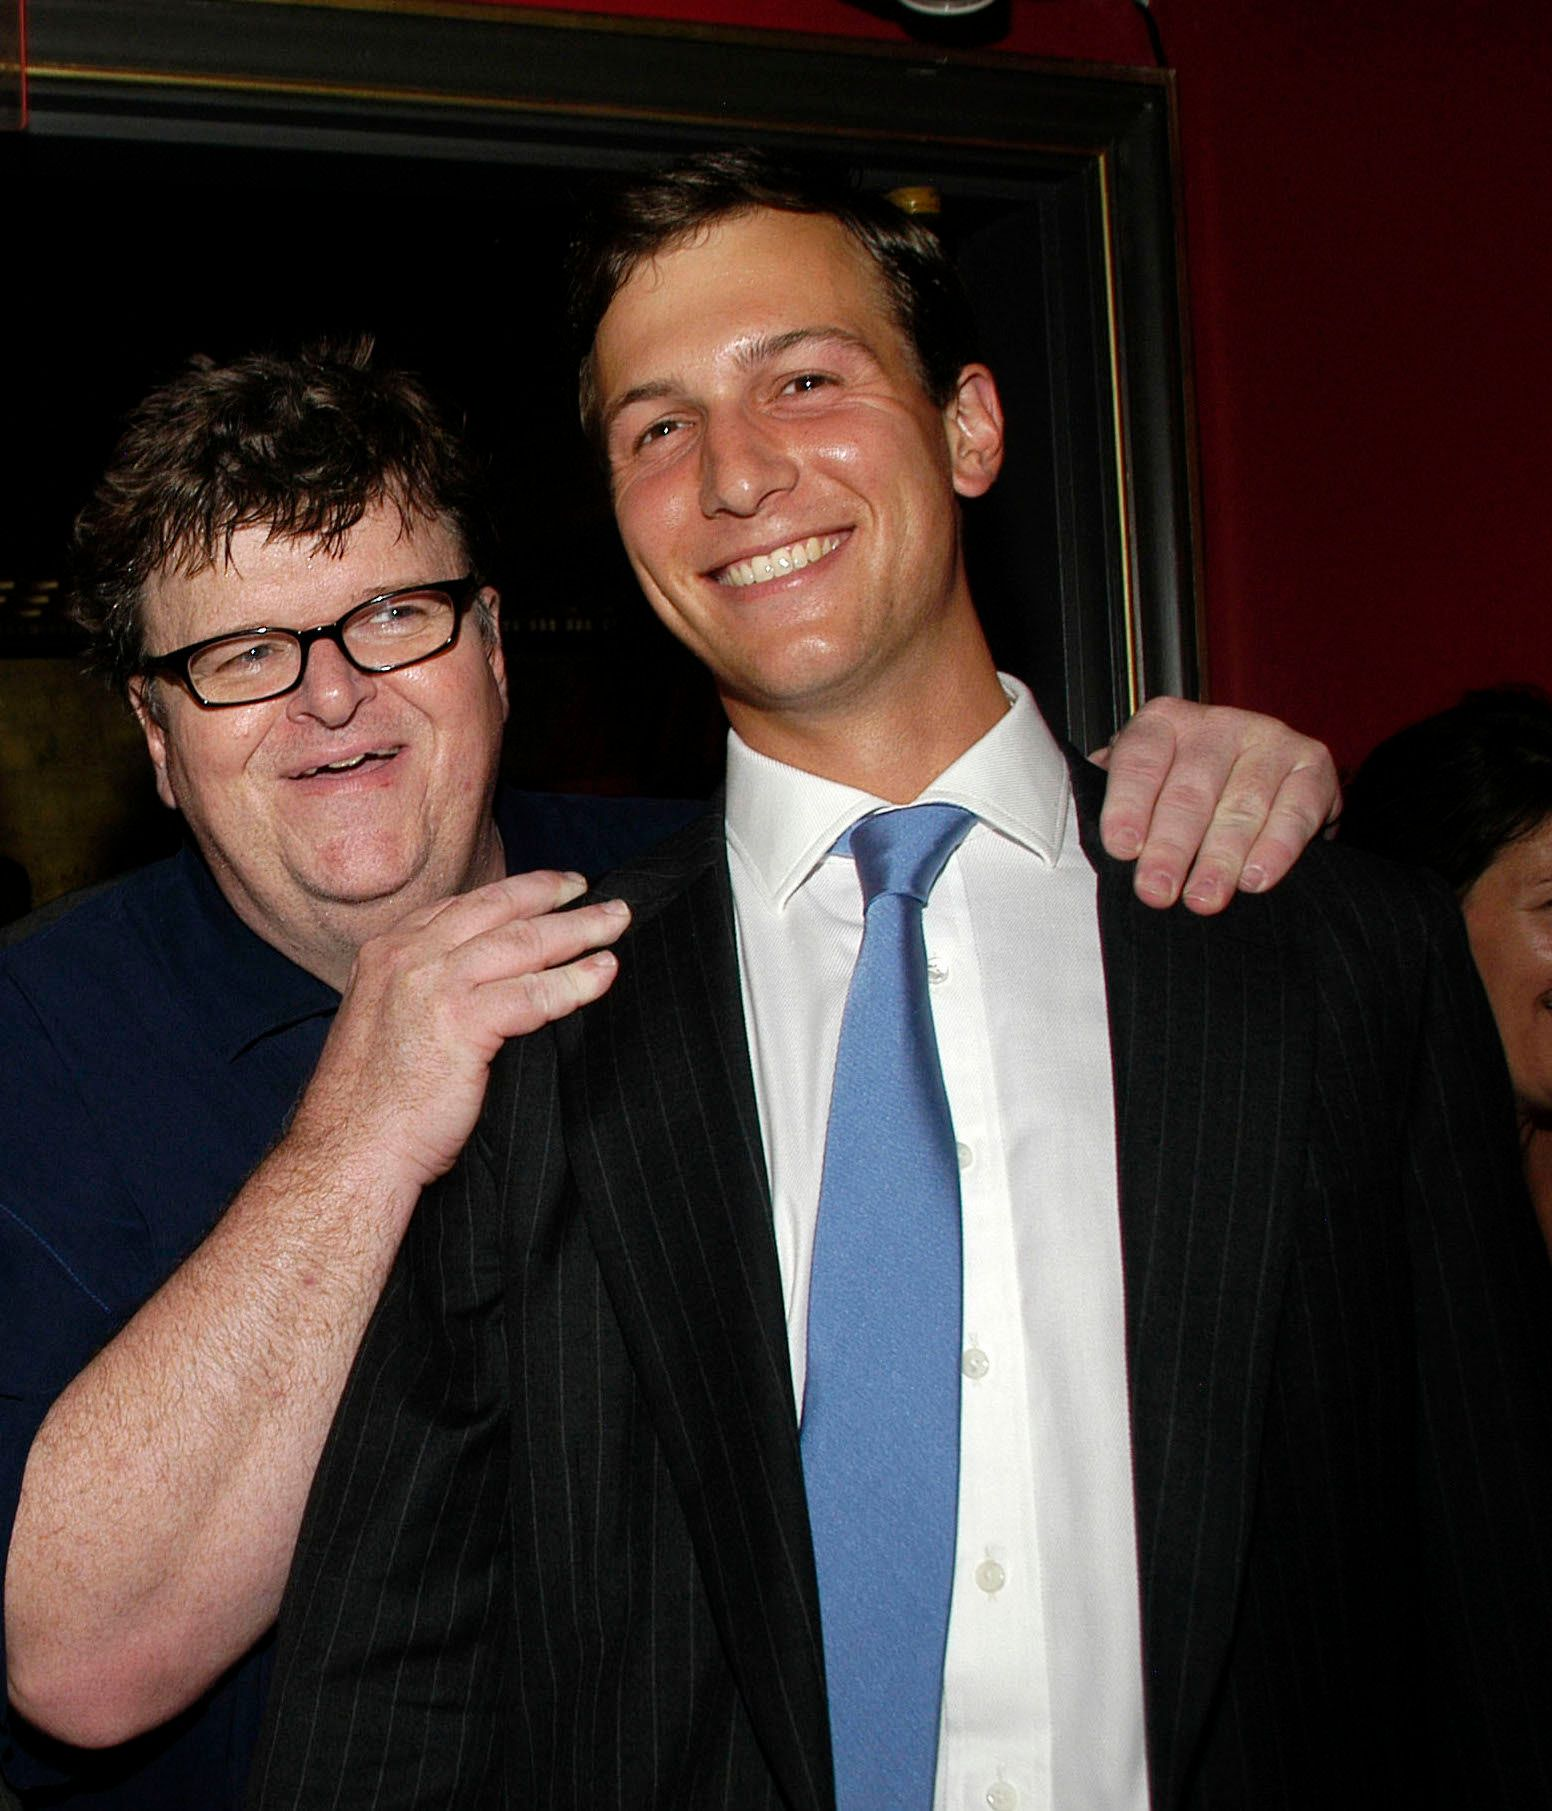 See The Trailer For Michael Moore's New Documentary About